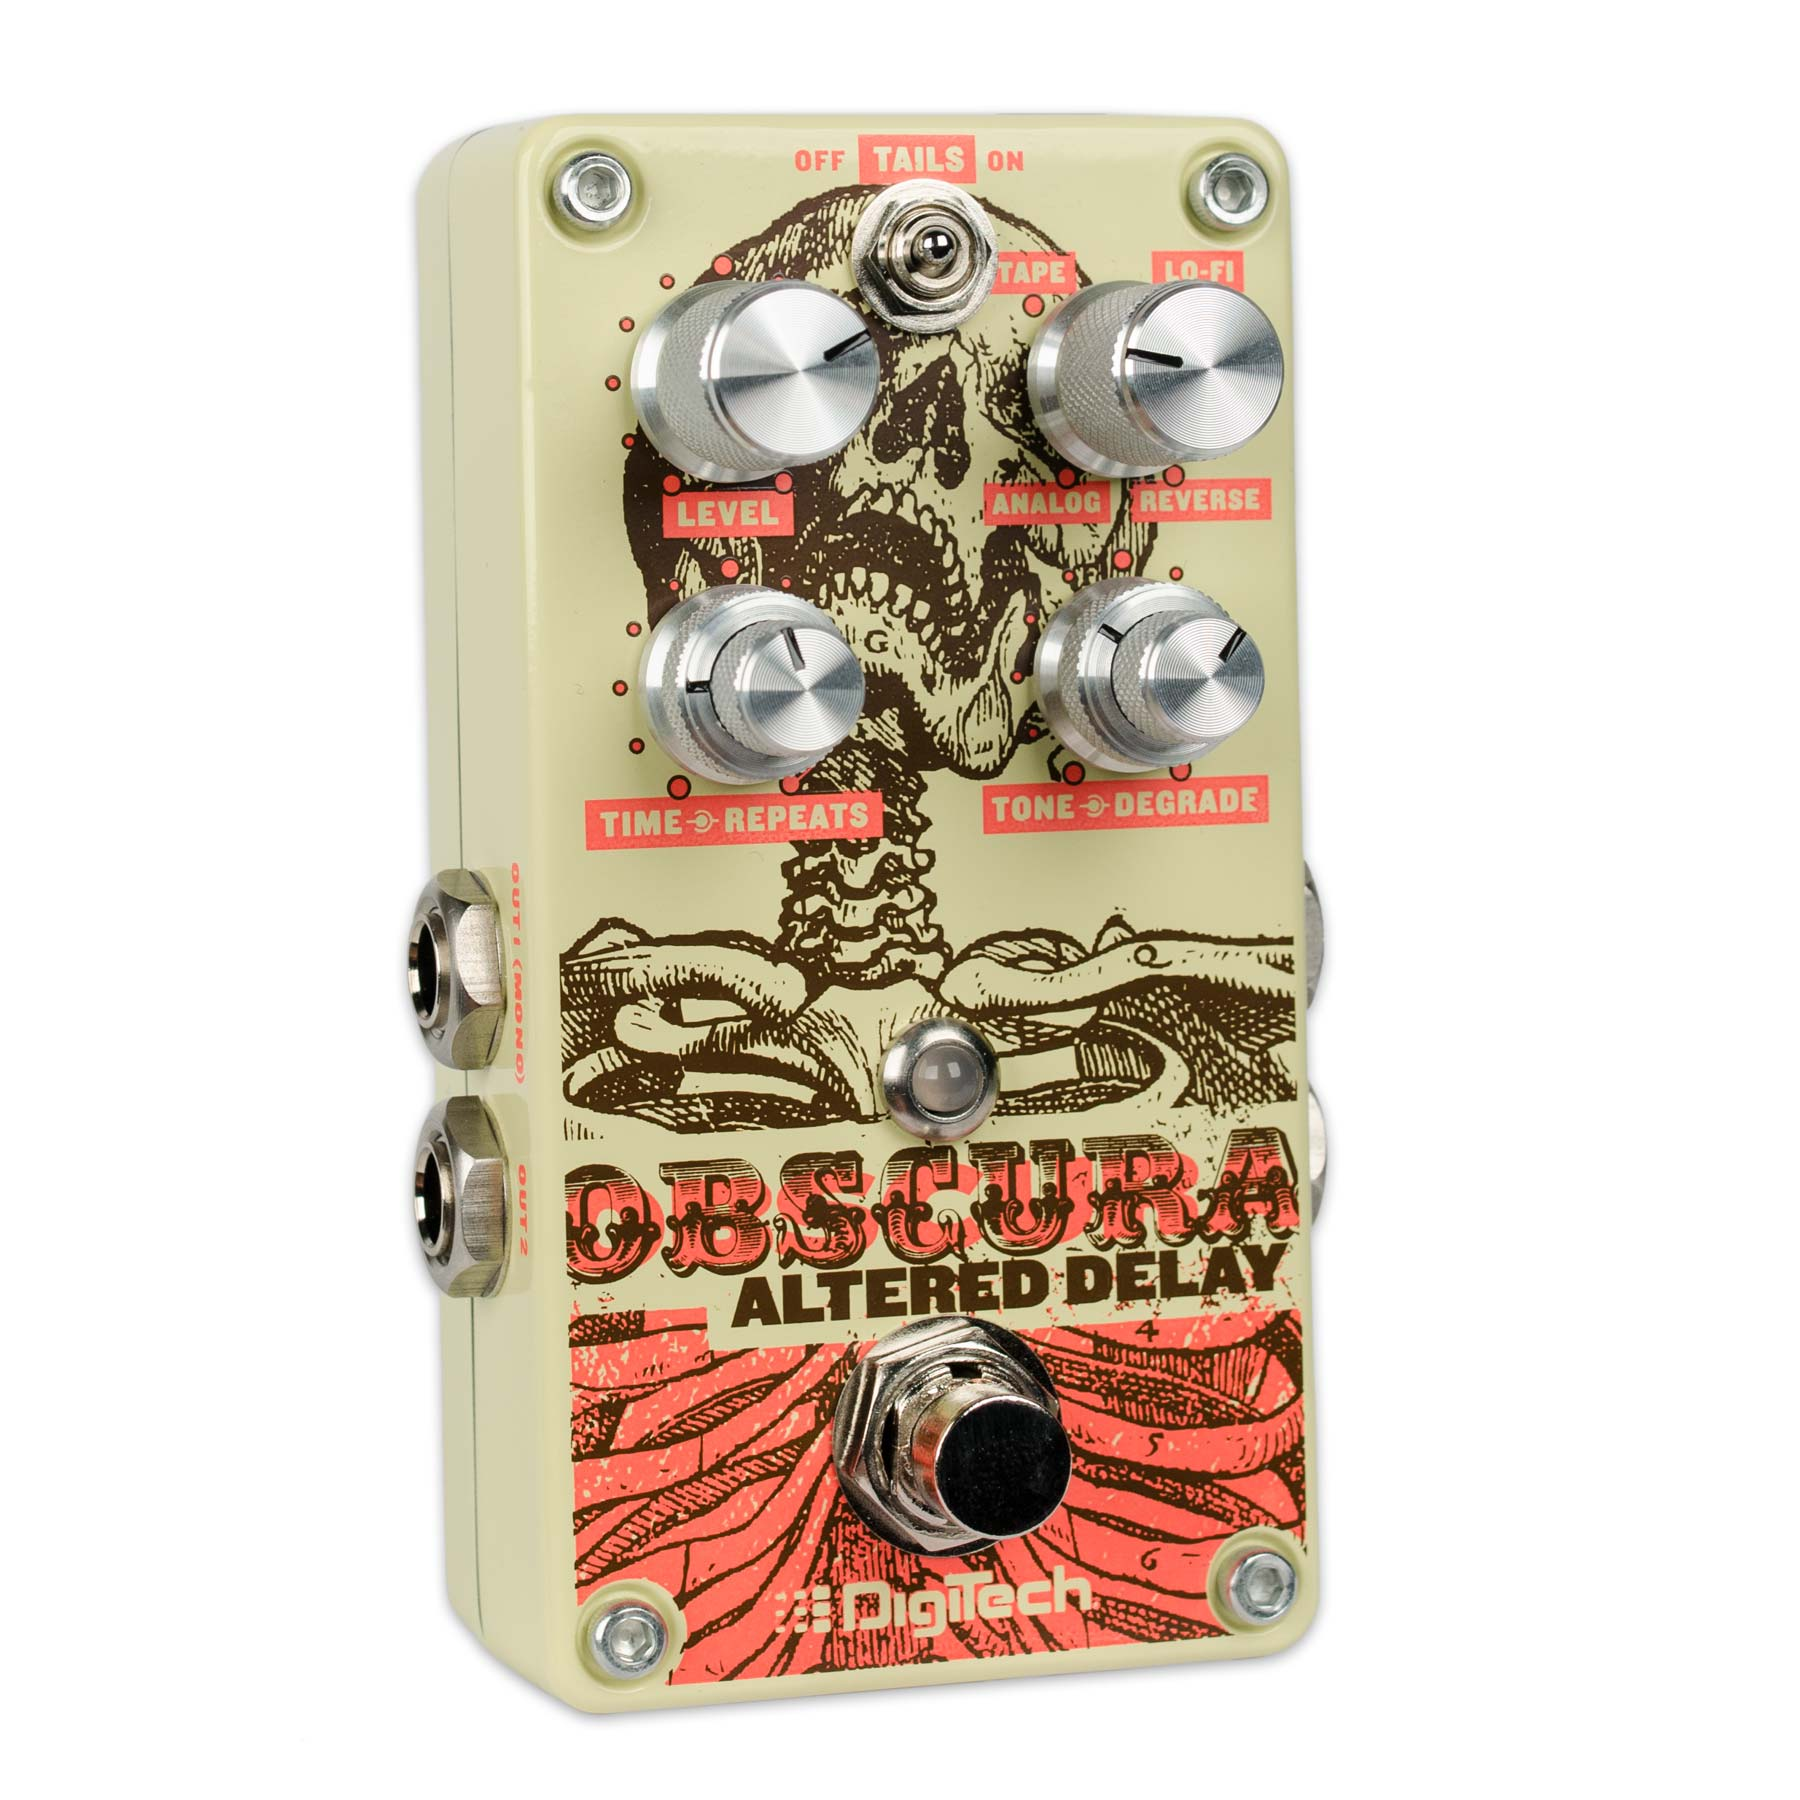 DIGITECH OBSCURA ALTERED DELAY WITH 4 DELAY MODES